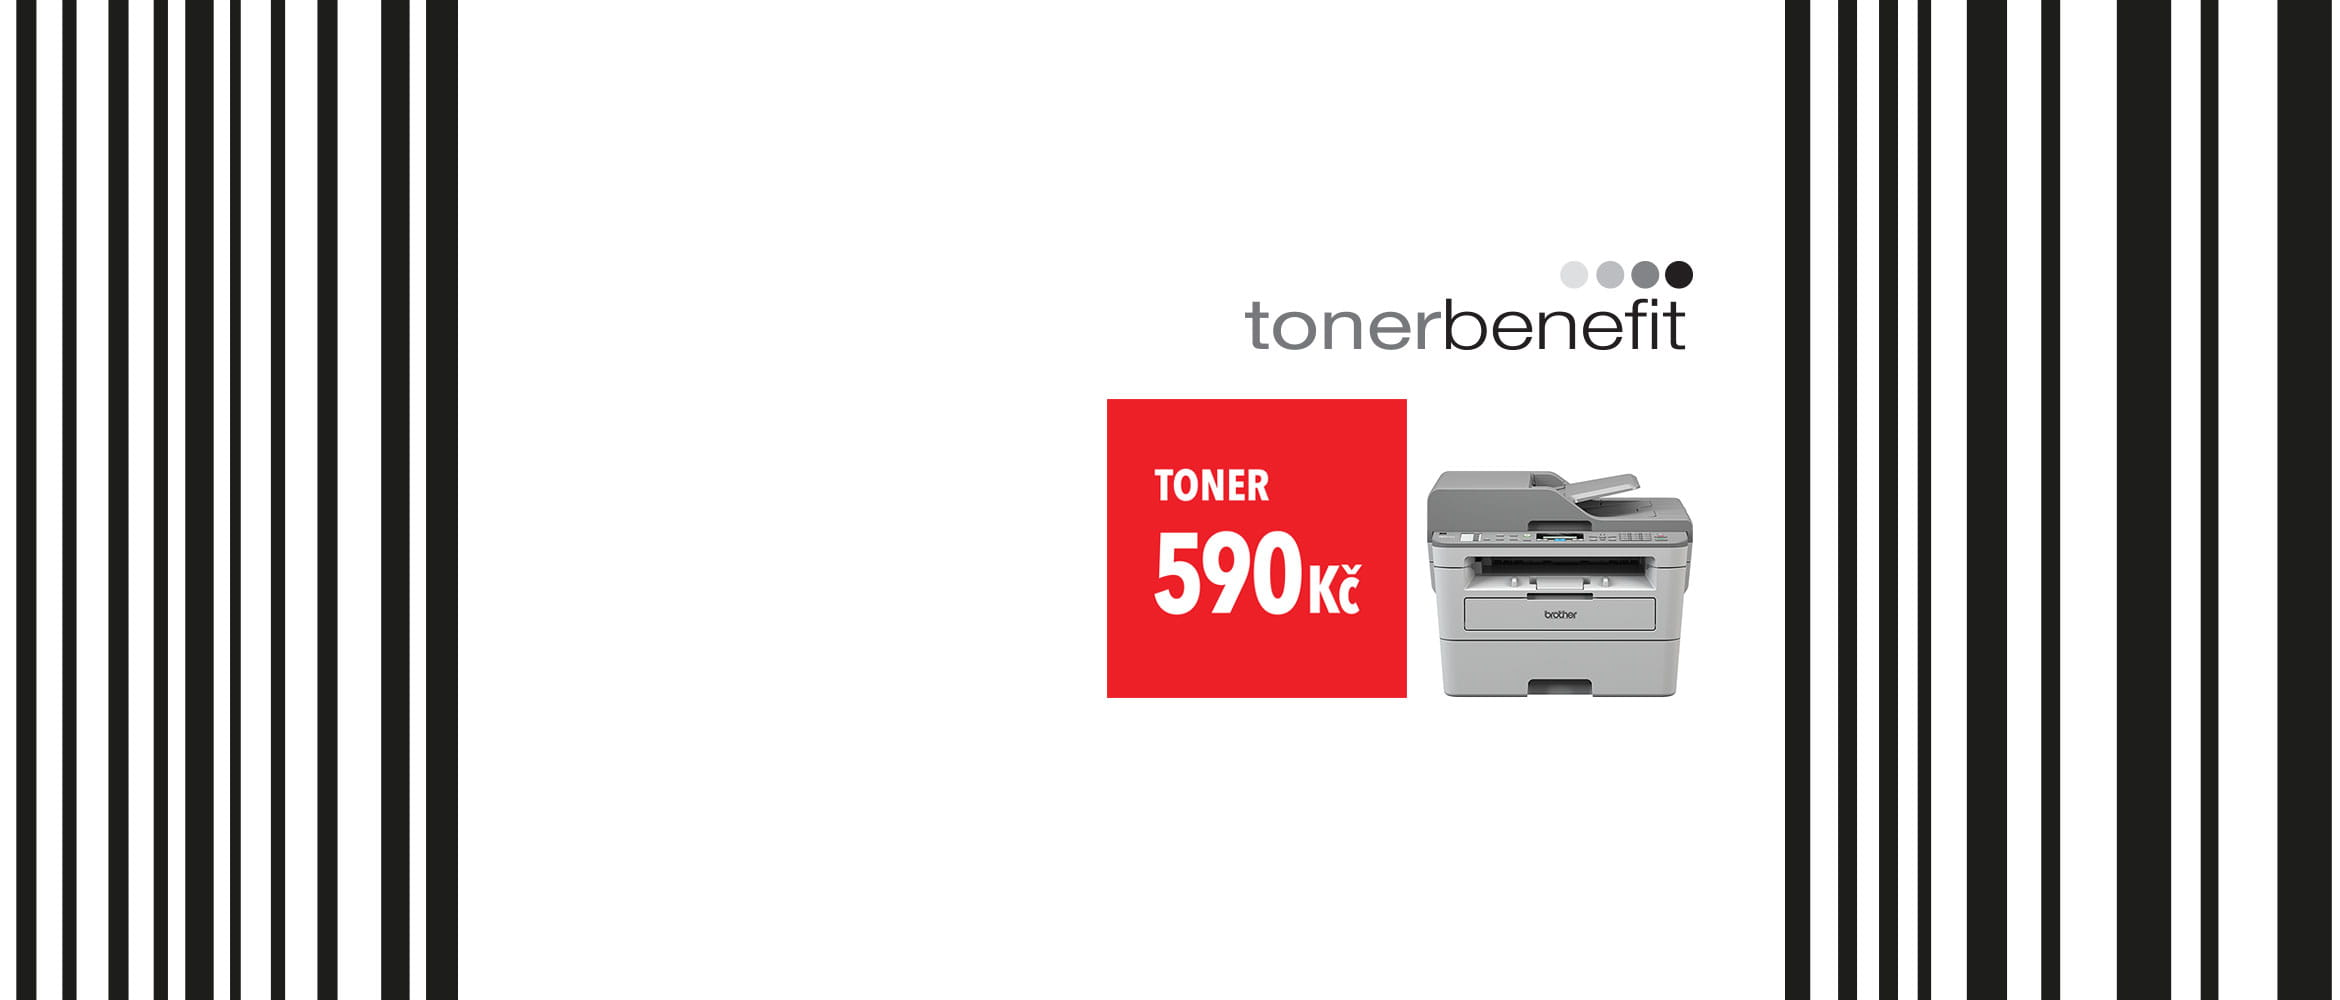 Brother tonerbenefit image with printer and barcode